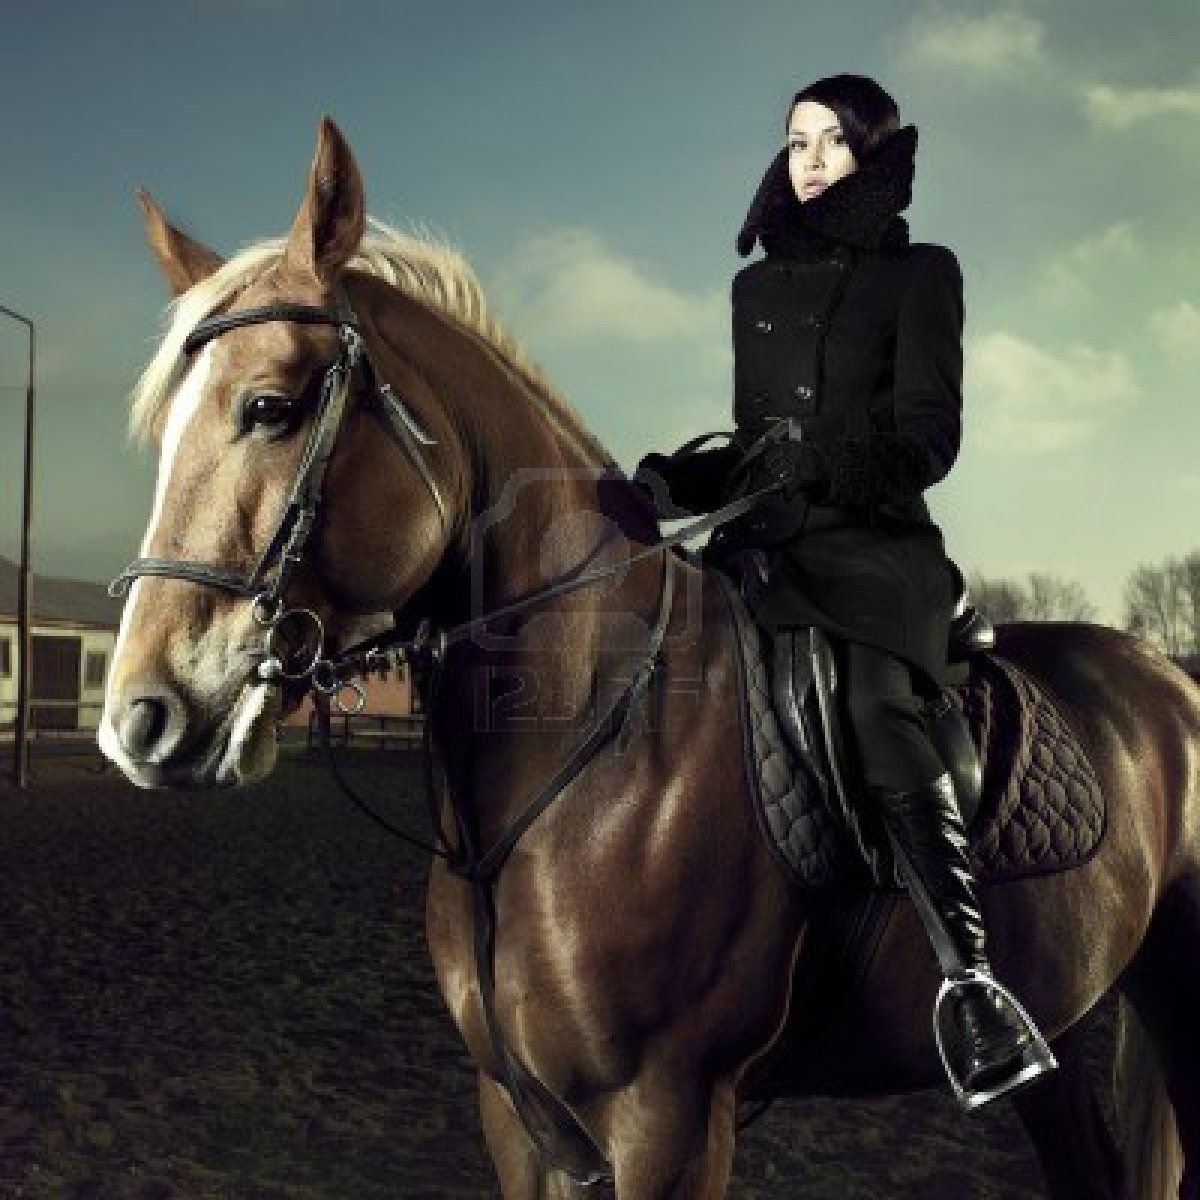 Tall Riding Boots Equine Photography Equestrian Chic Equestrian Fashion Woman Riding Horse